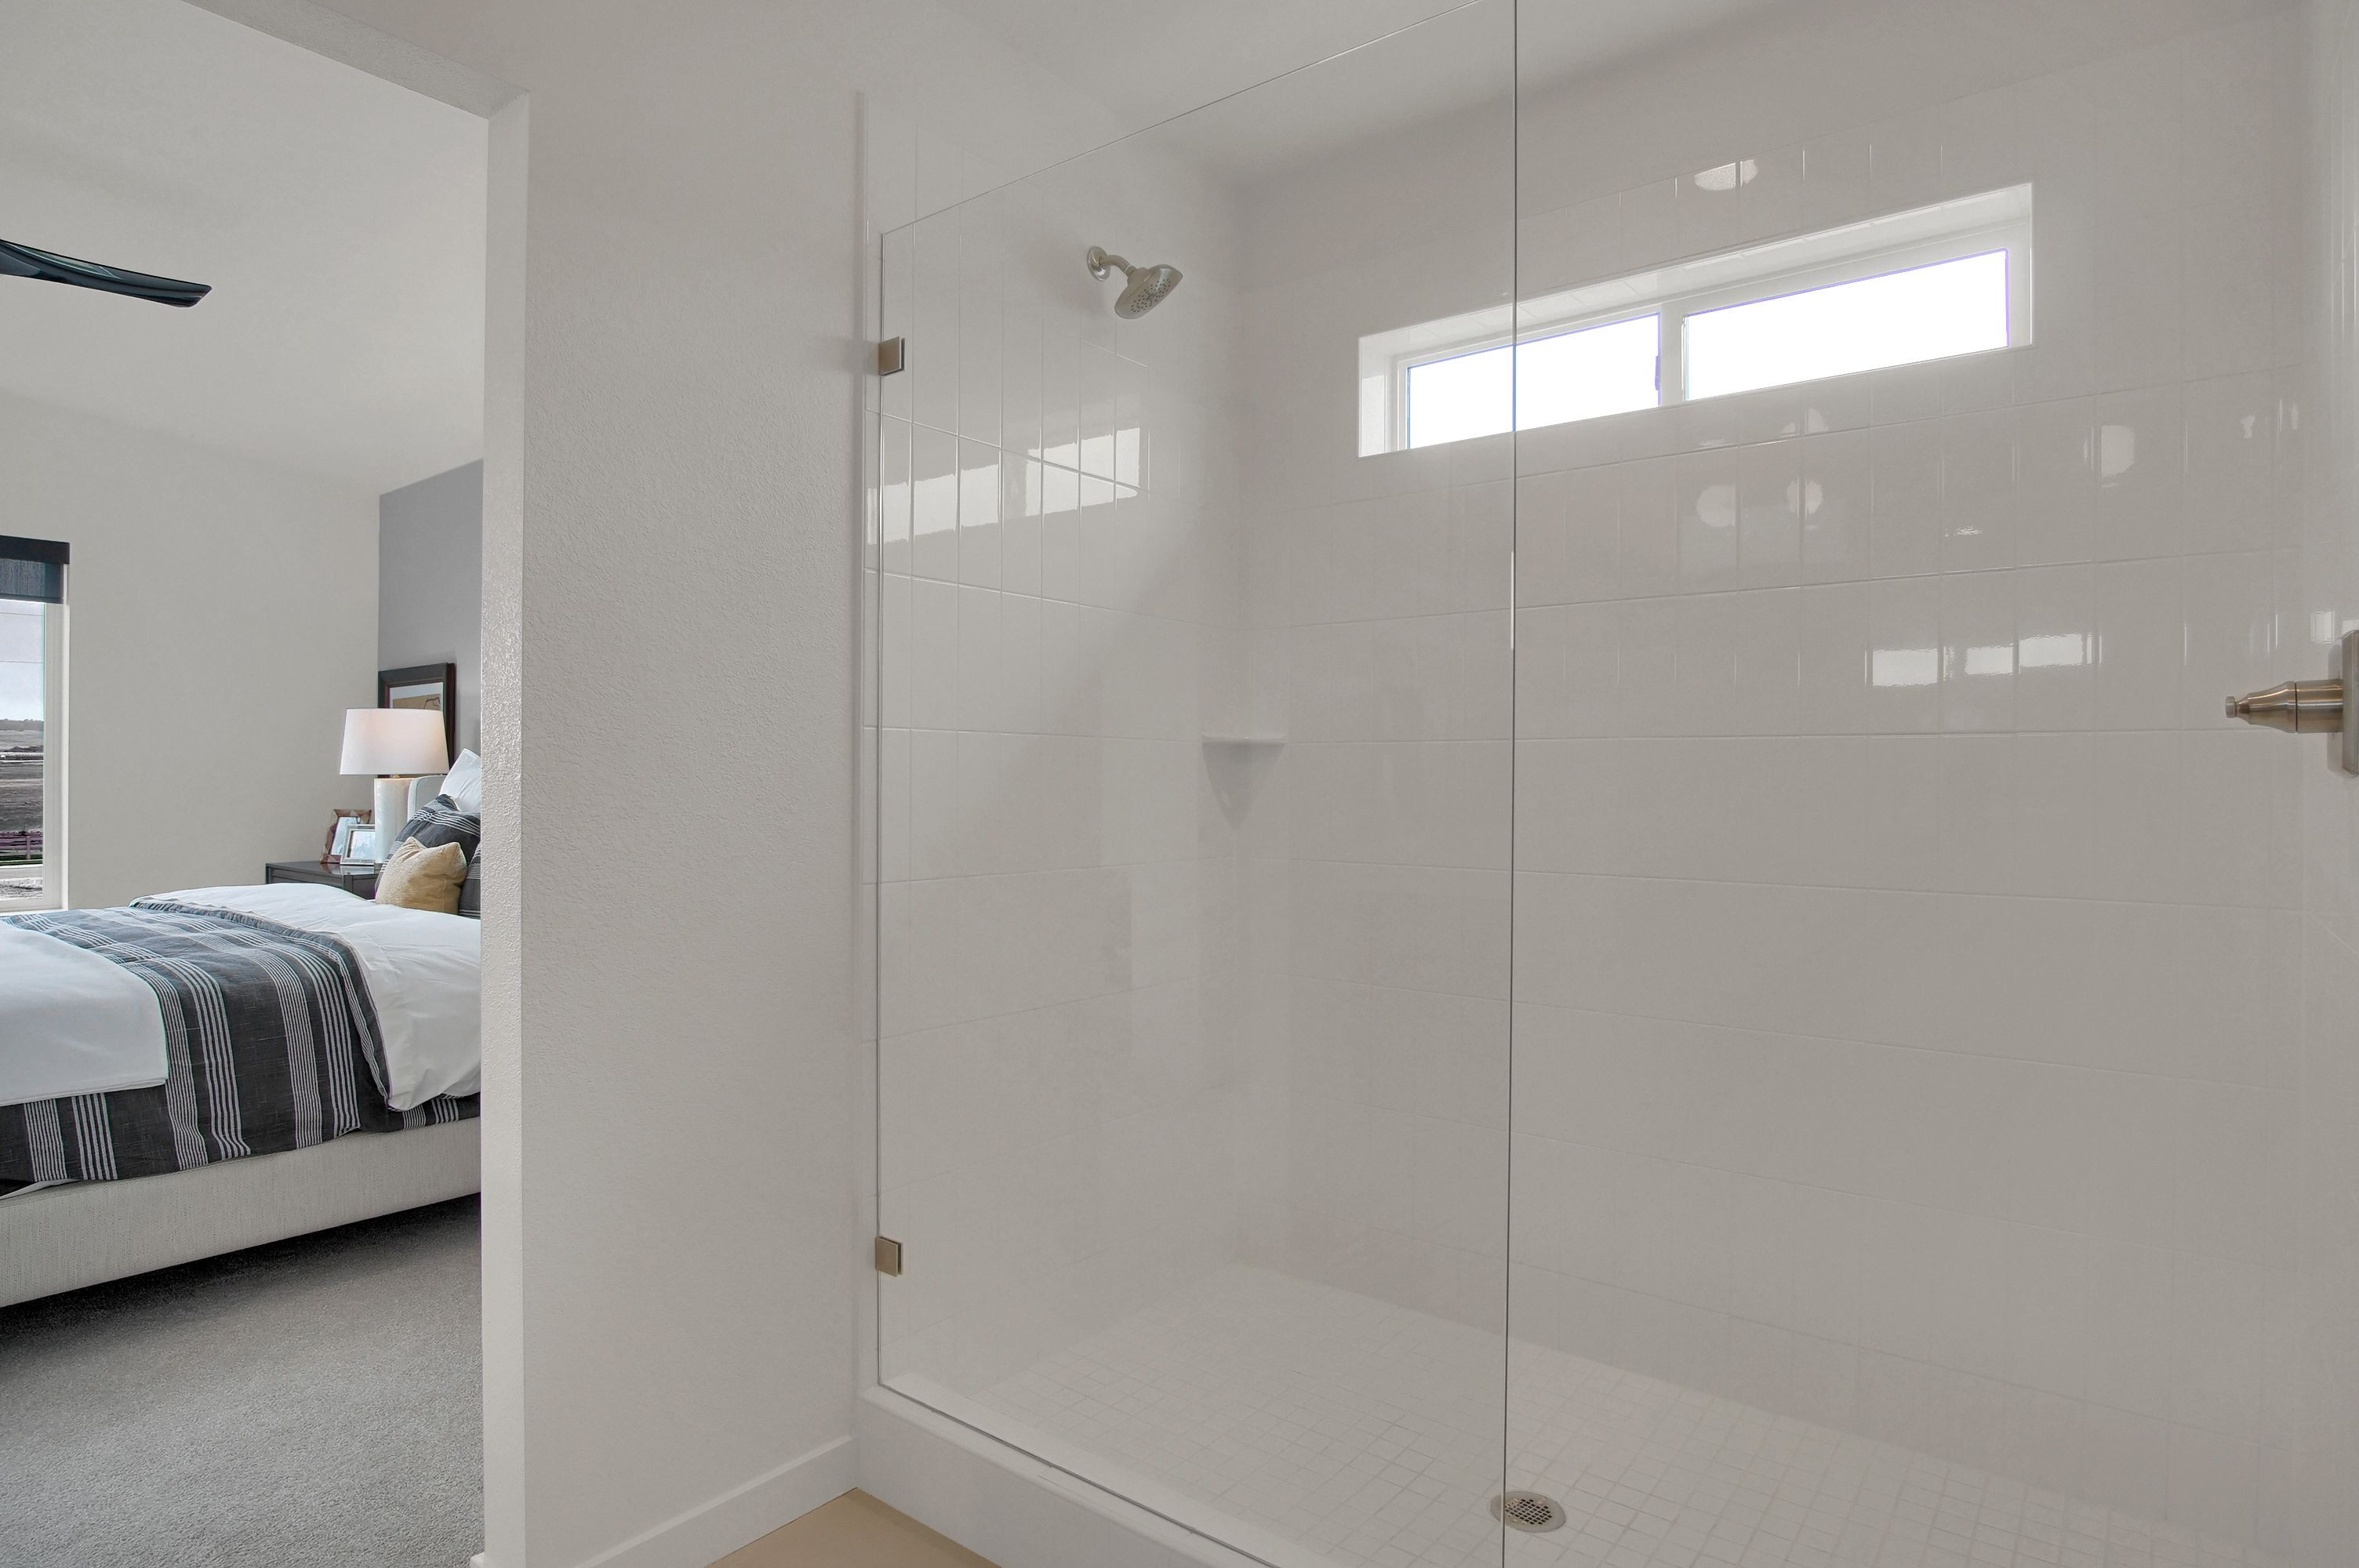 Bathroom featured in the Vineyard By Keller Homes, A Toll Bros. Co. in Colorado Springs, CO